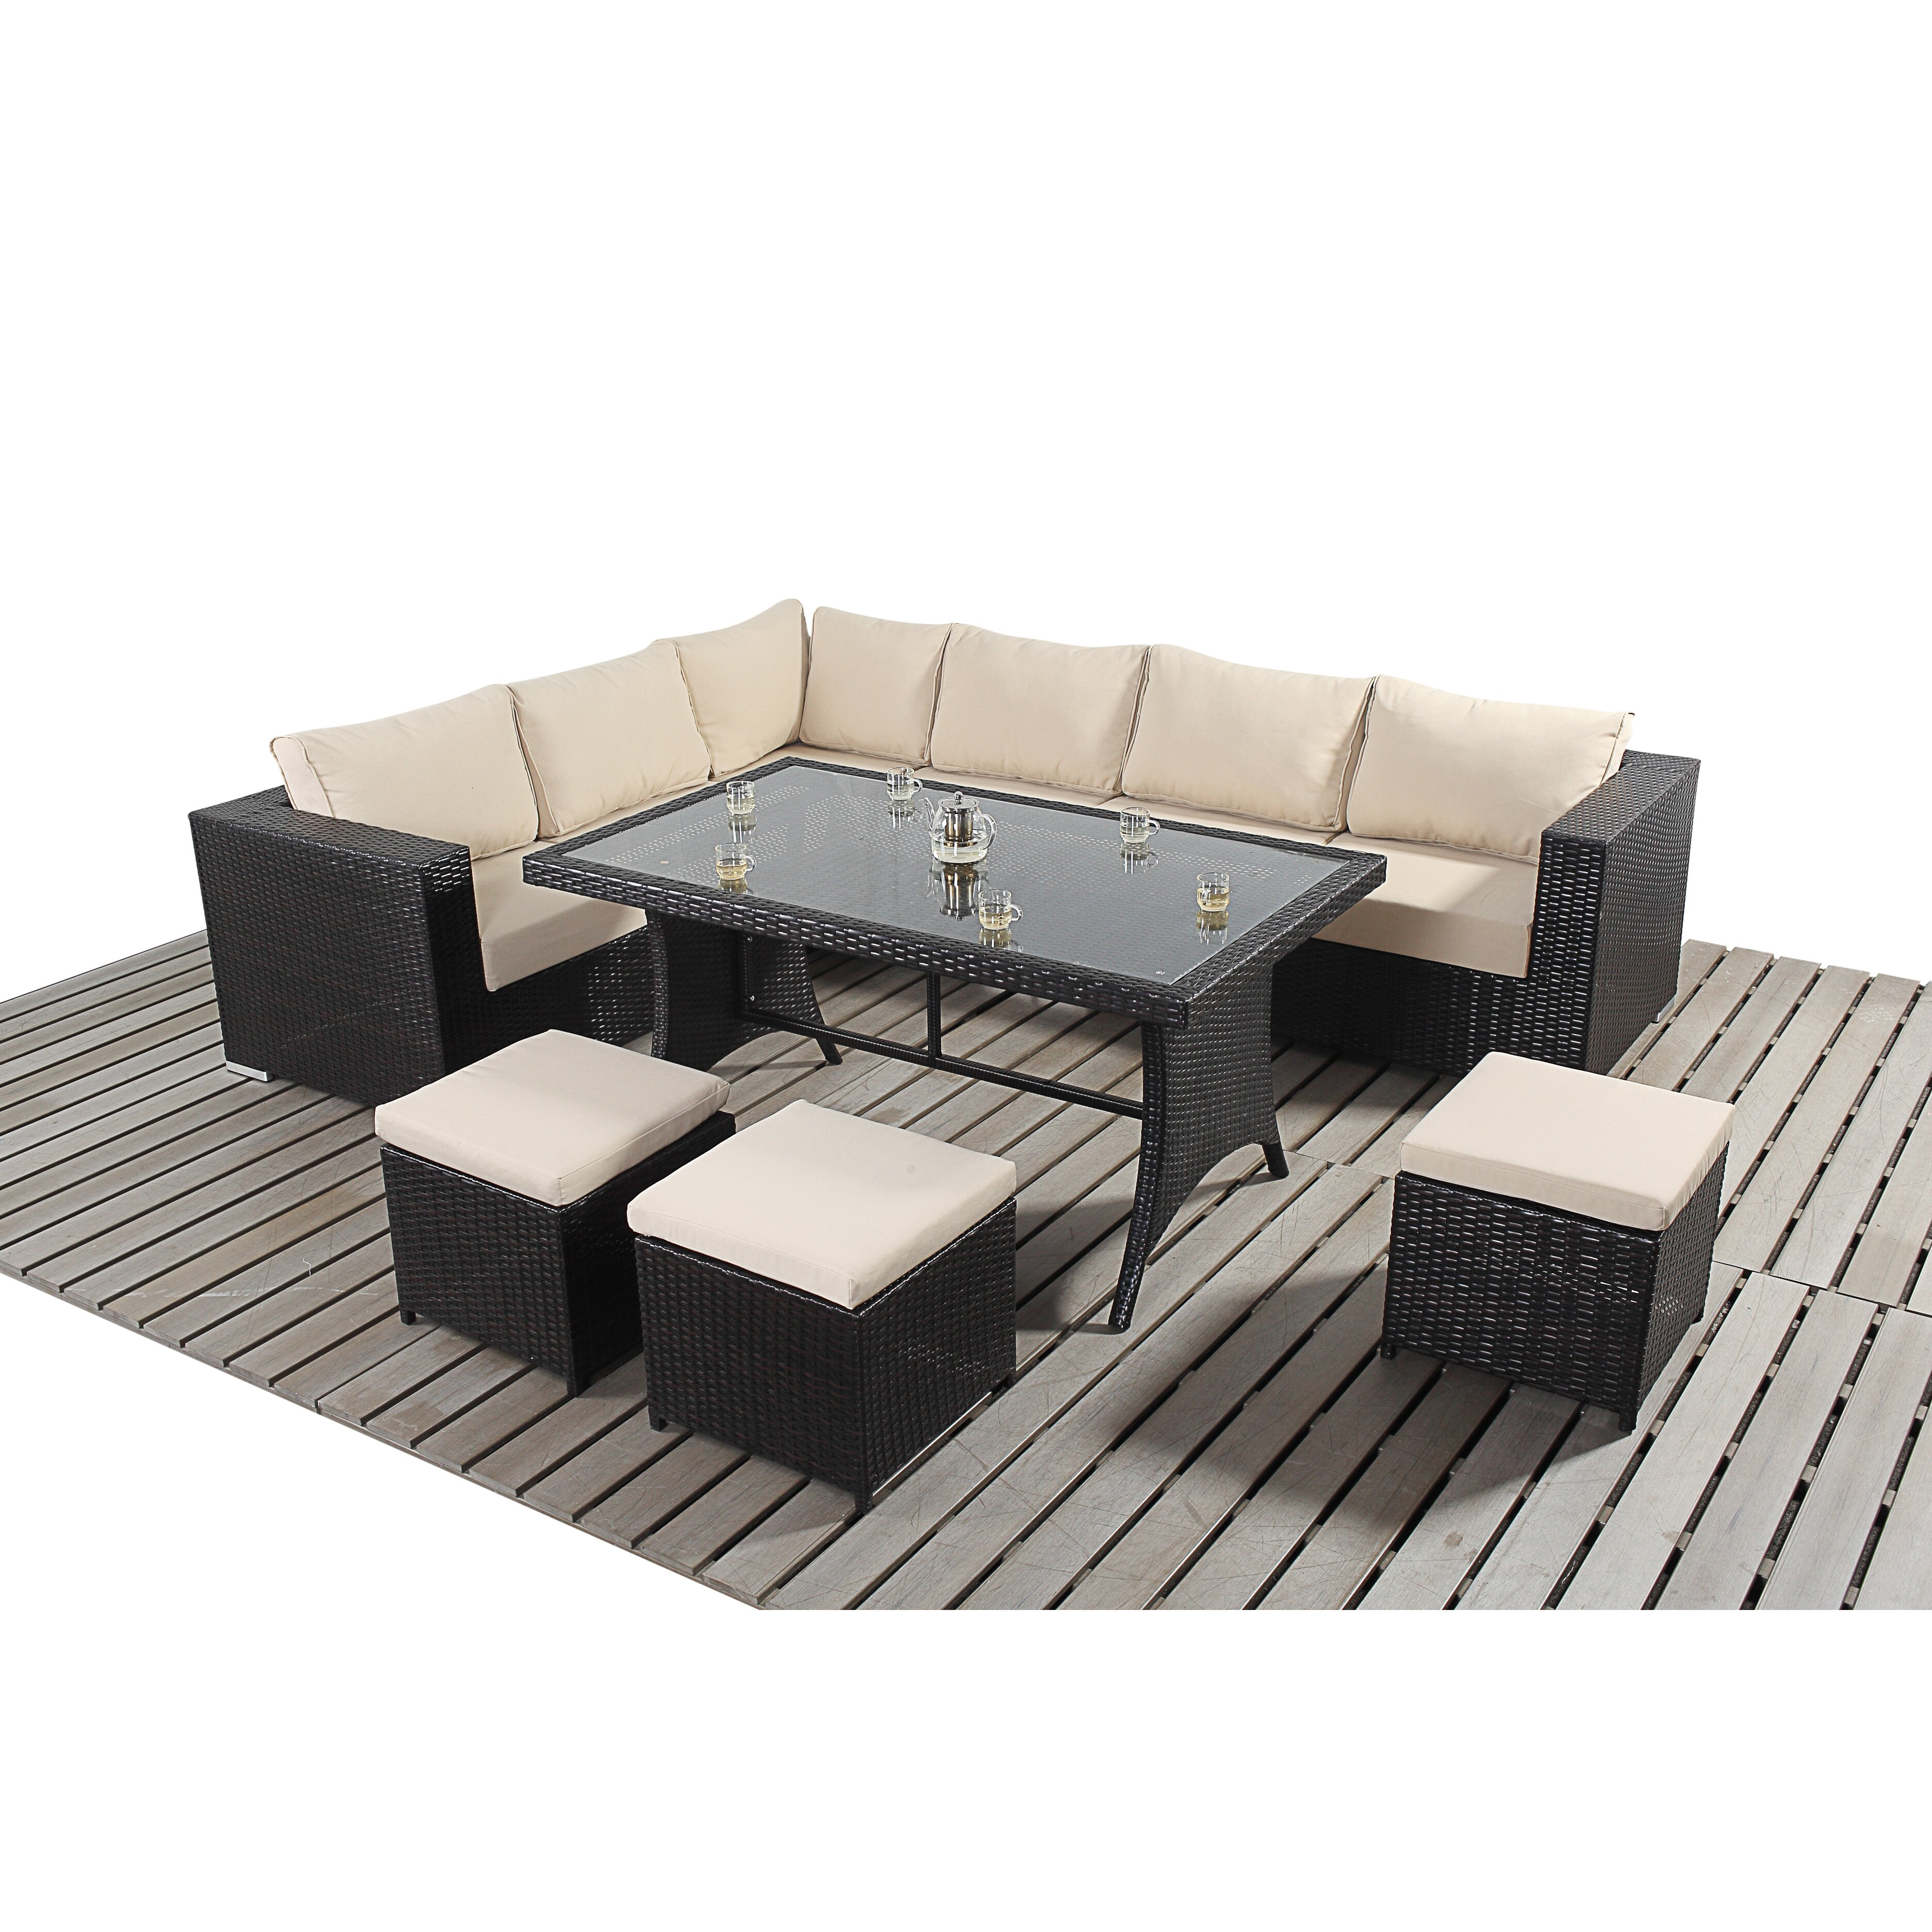 Home etc luxe 9 seater sectional sofa set with cushions for Furniture etc reviews